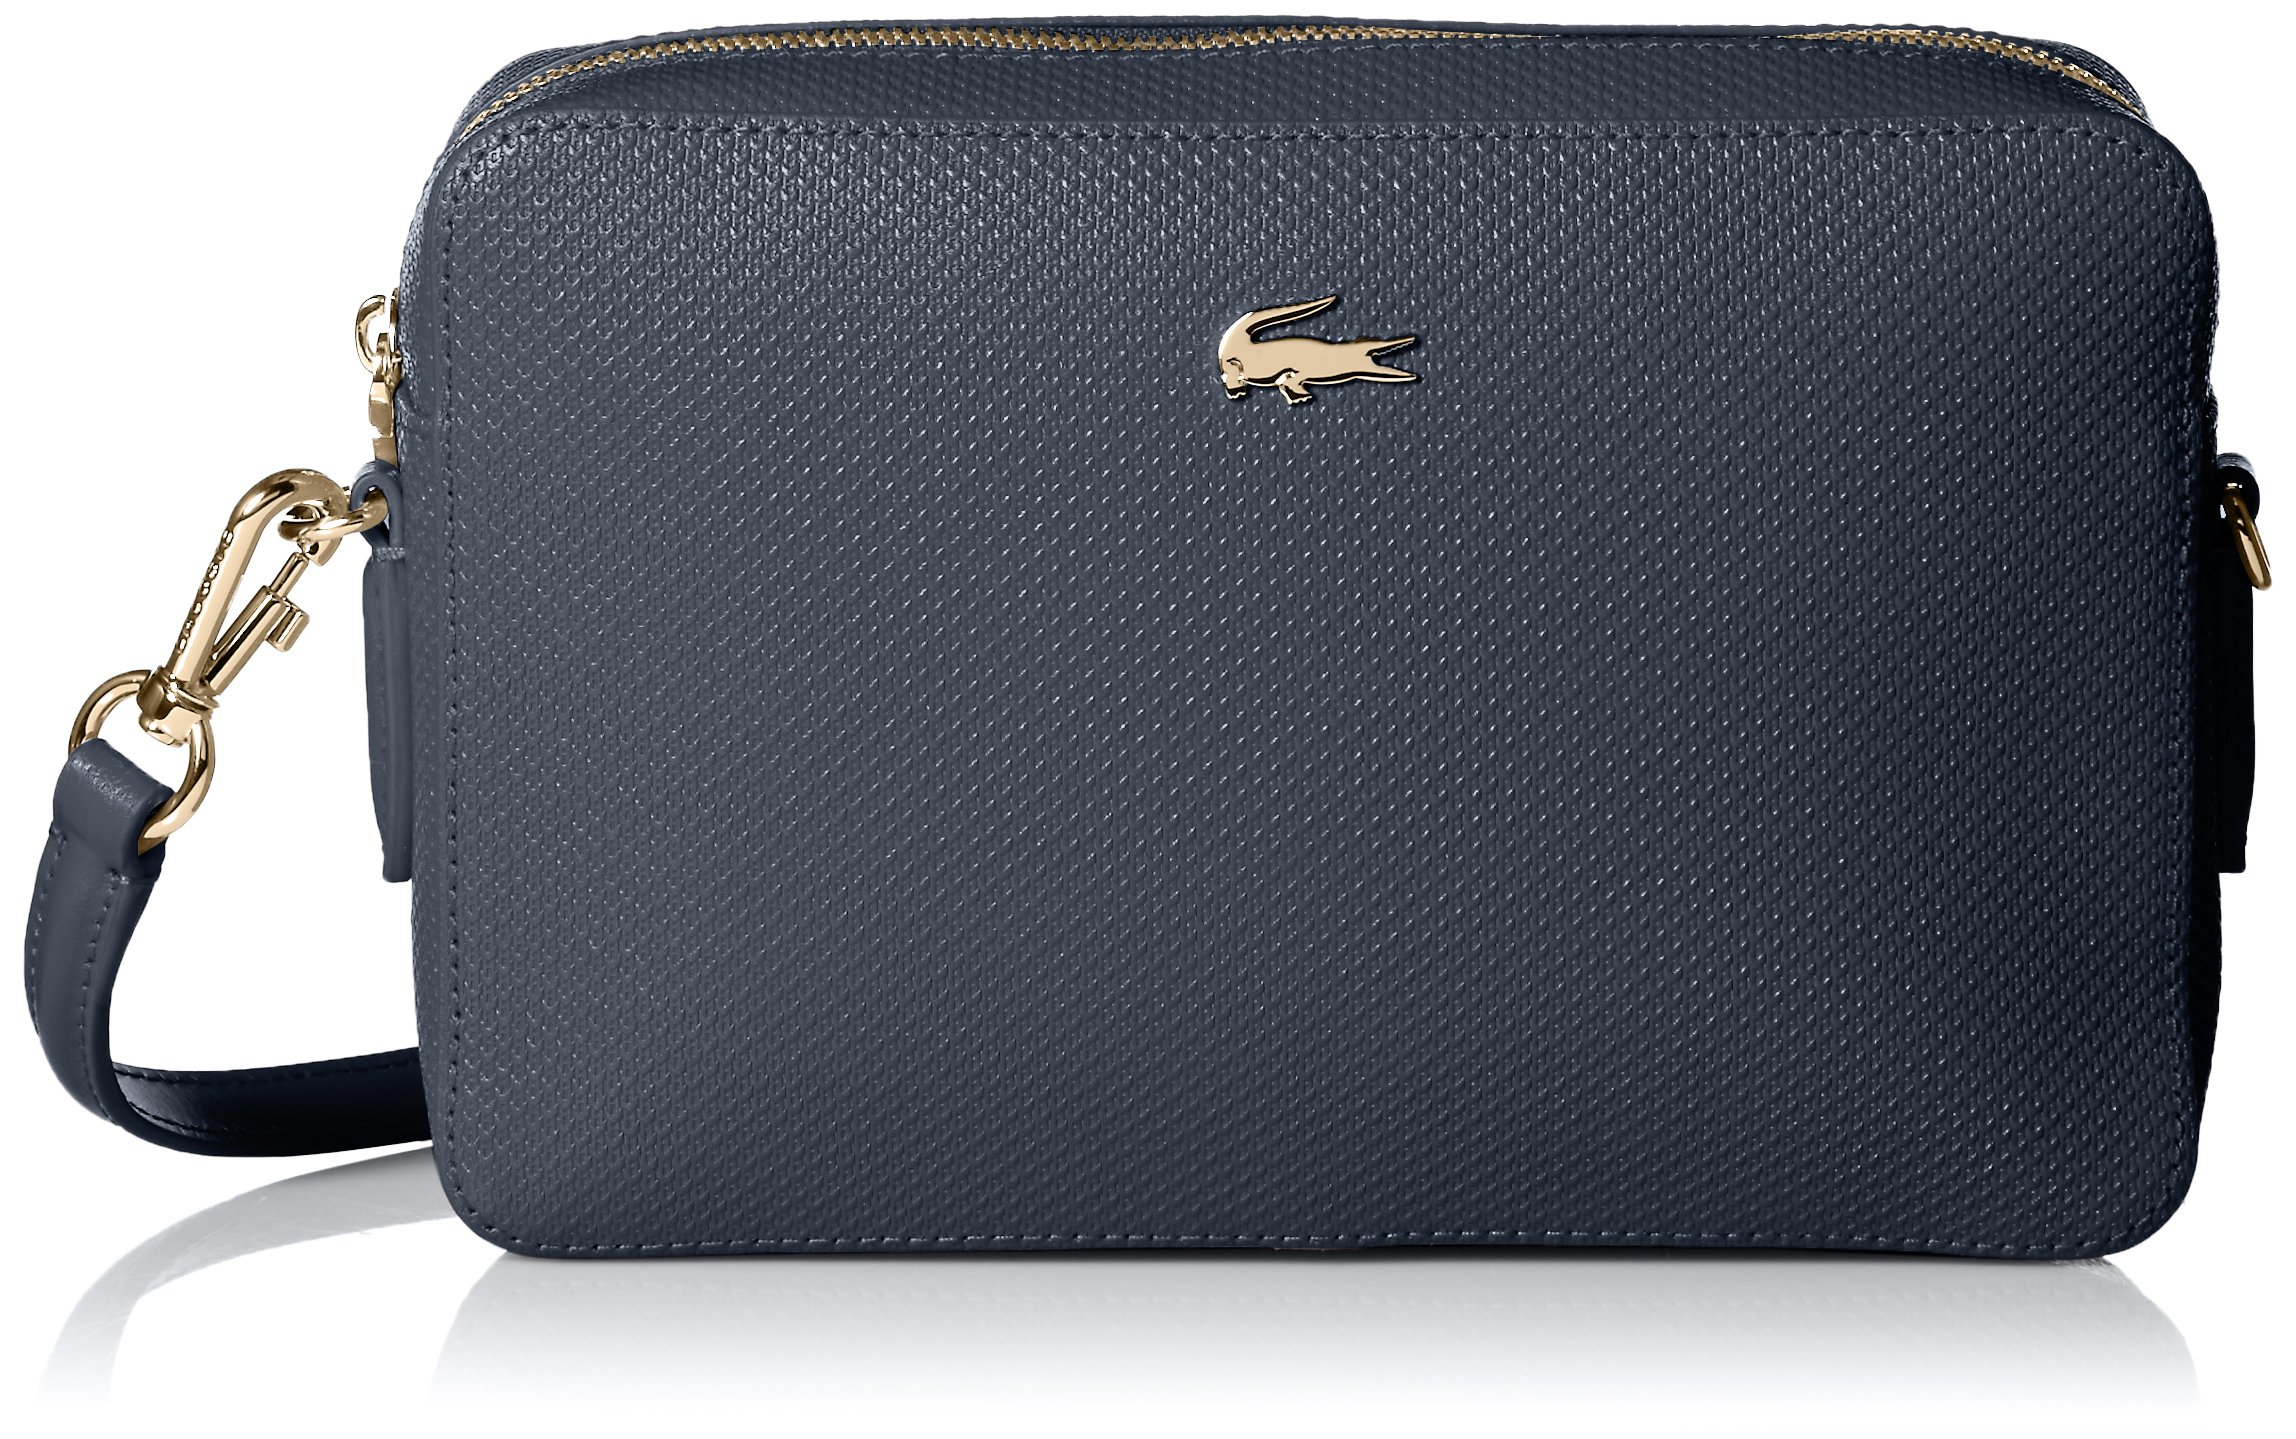 Lacoste Square Crossover Bag, Nf2068ce, Peacoat